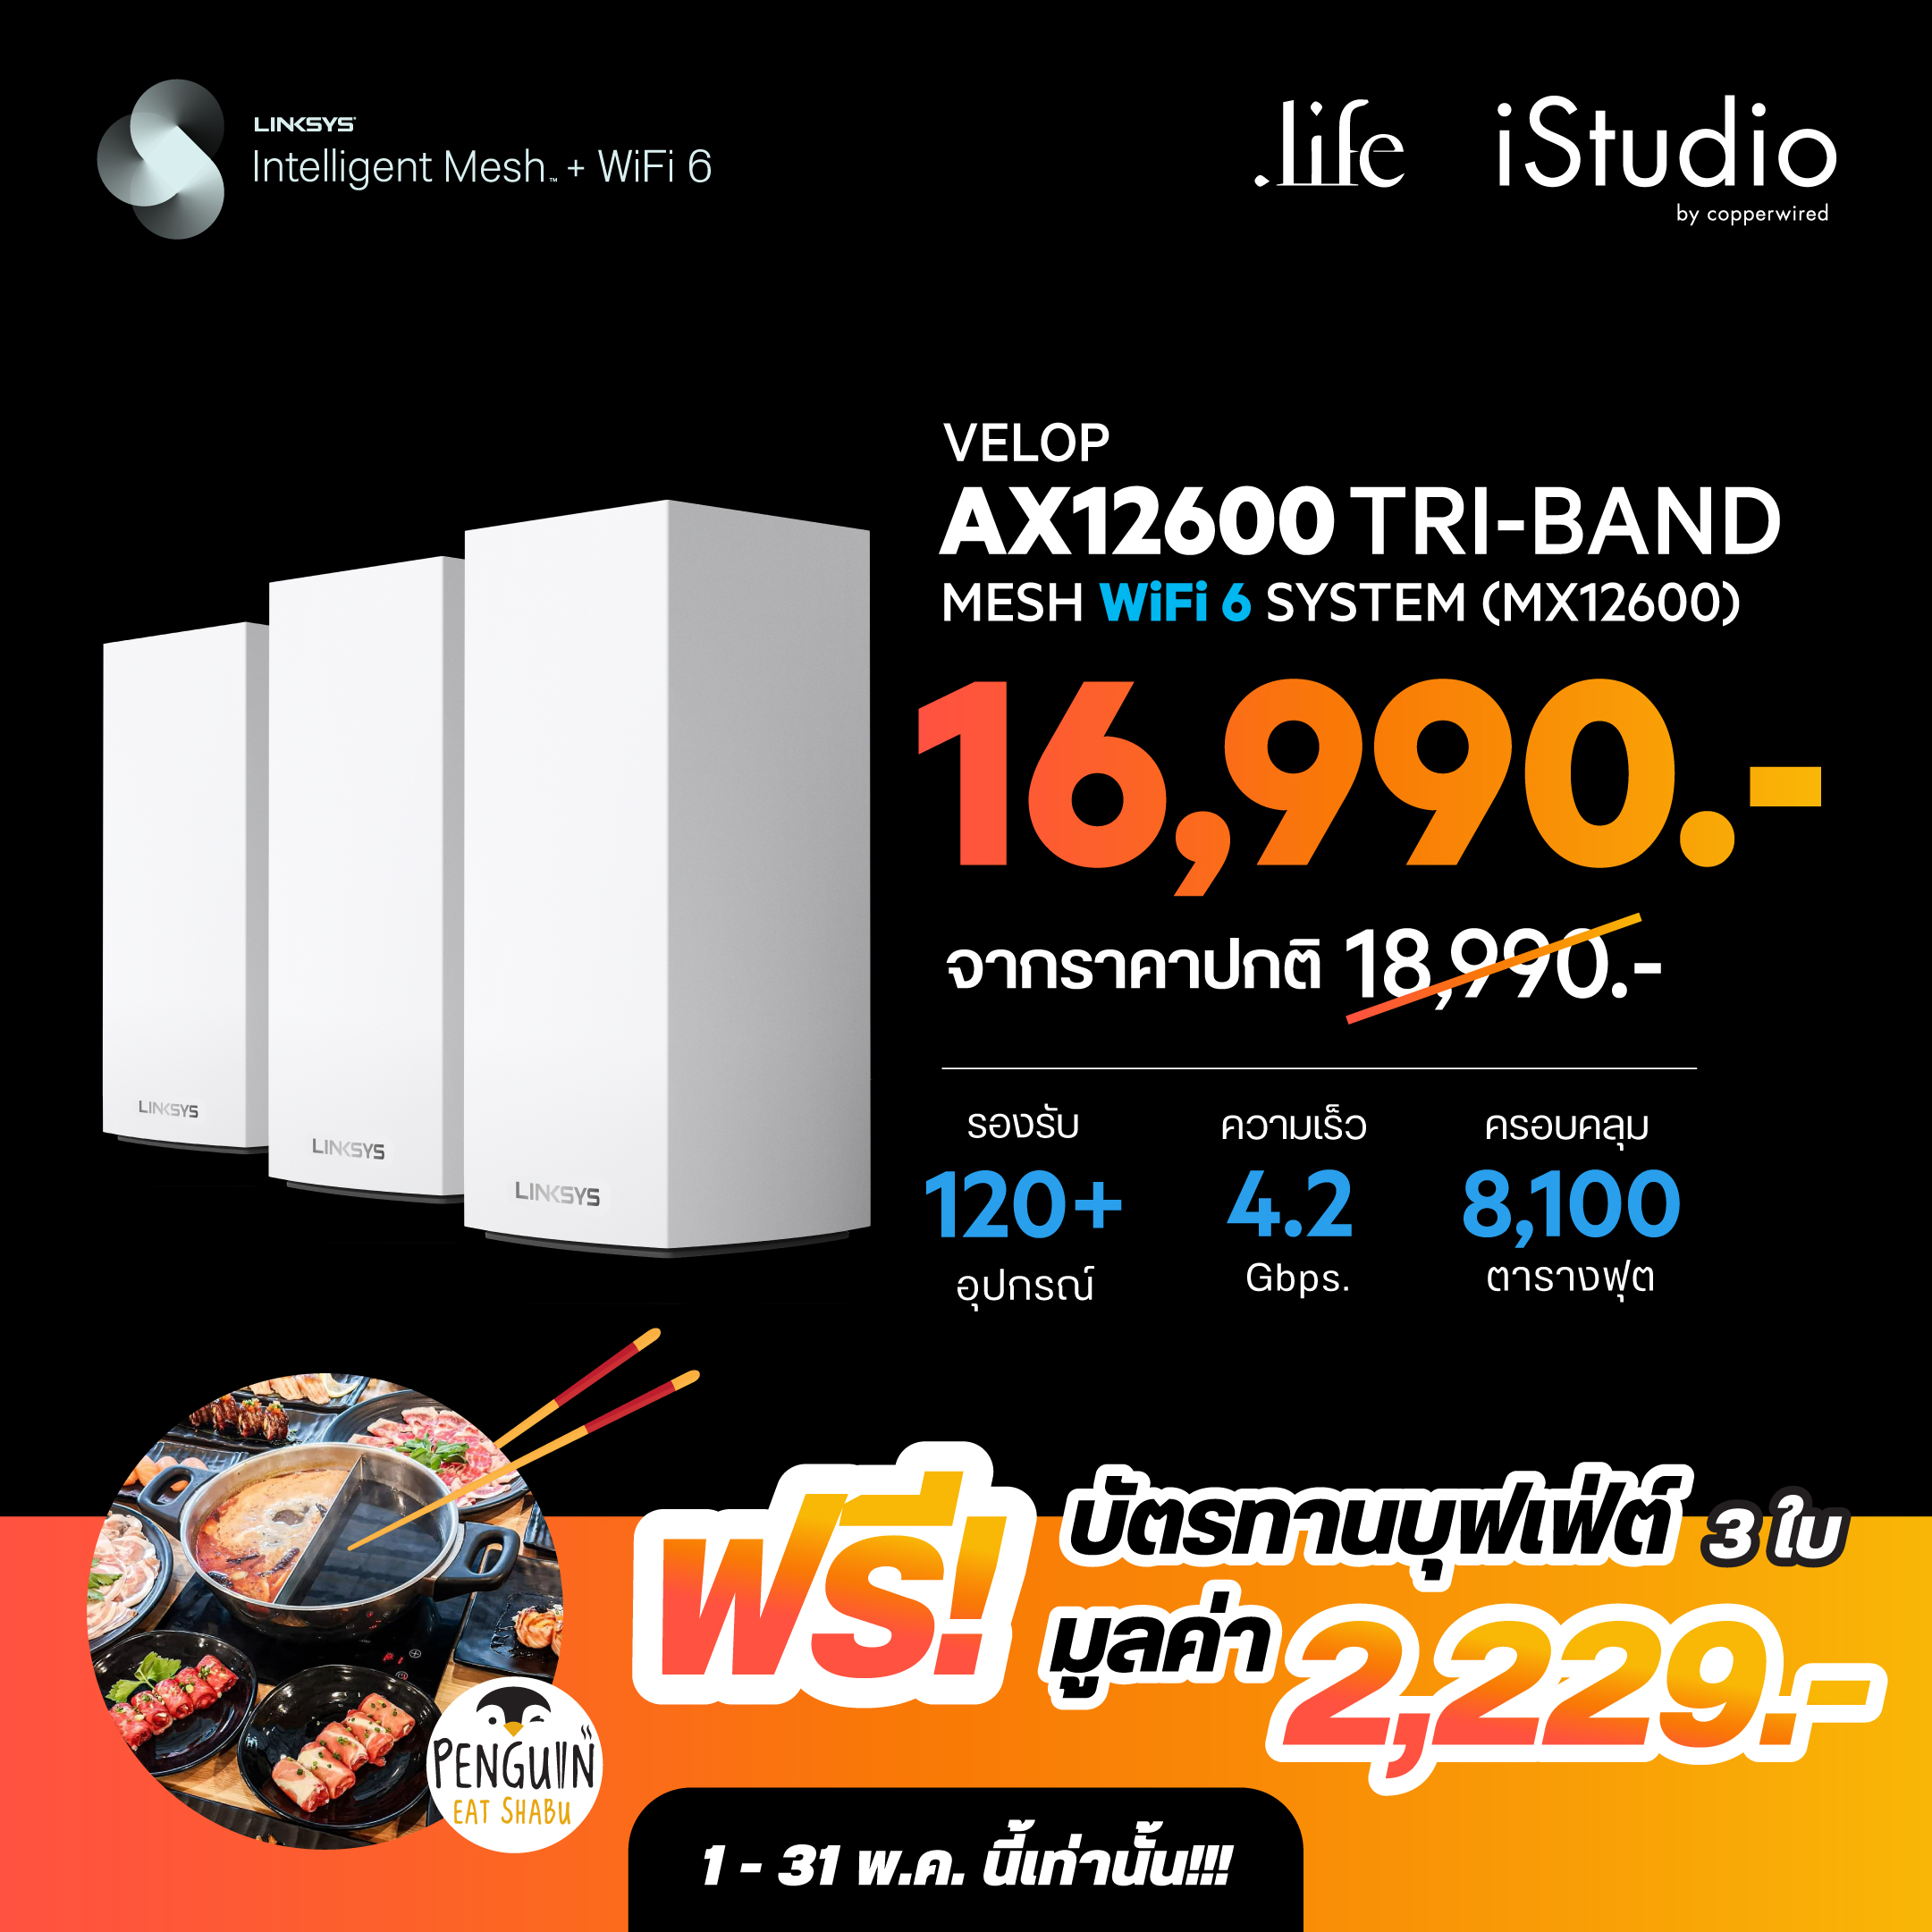 Linksys เน็ตฟิน กินฟรี .Life iStudio by Copperwired